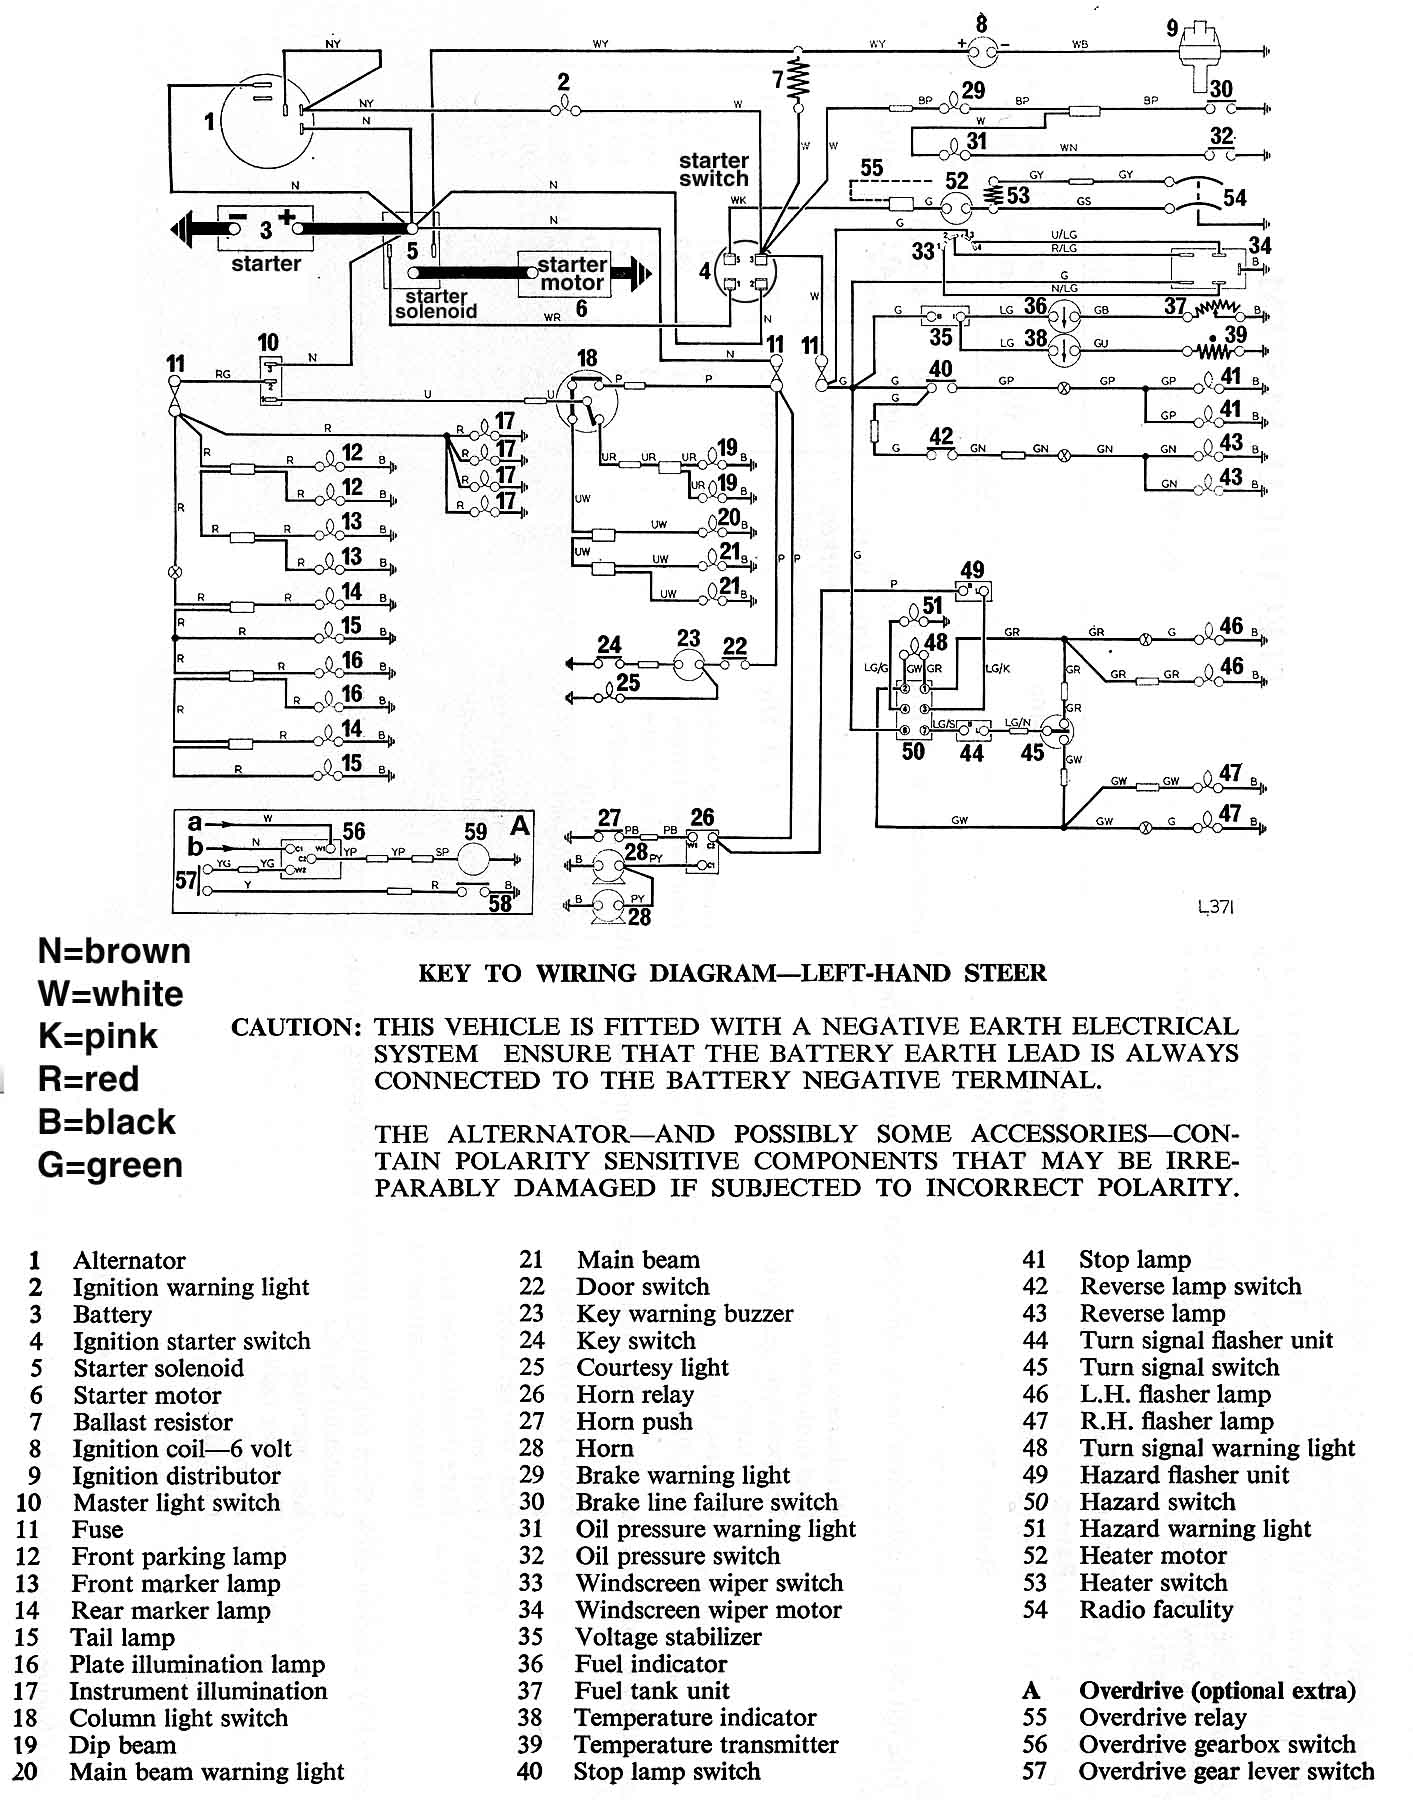 Heater Wiring Diagram 1973 Reinvent Your Stereo Heating Element Schematics And Diagrams Triumph Spitfire Gt6 Herald Rh Triumphspitfire Com Electric Basic